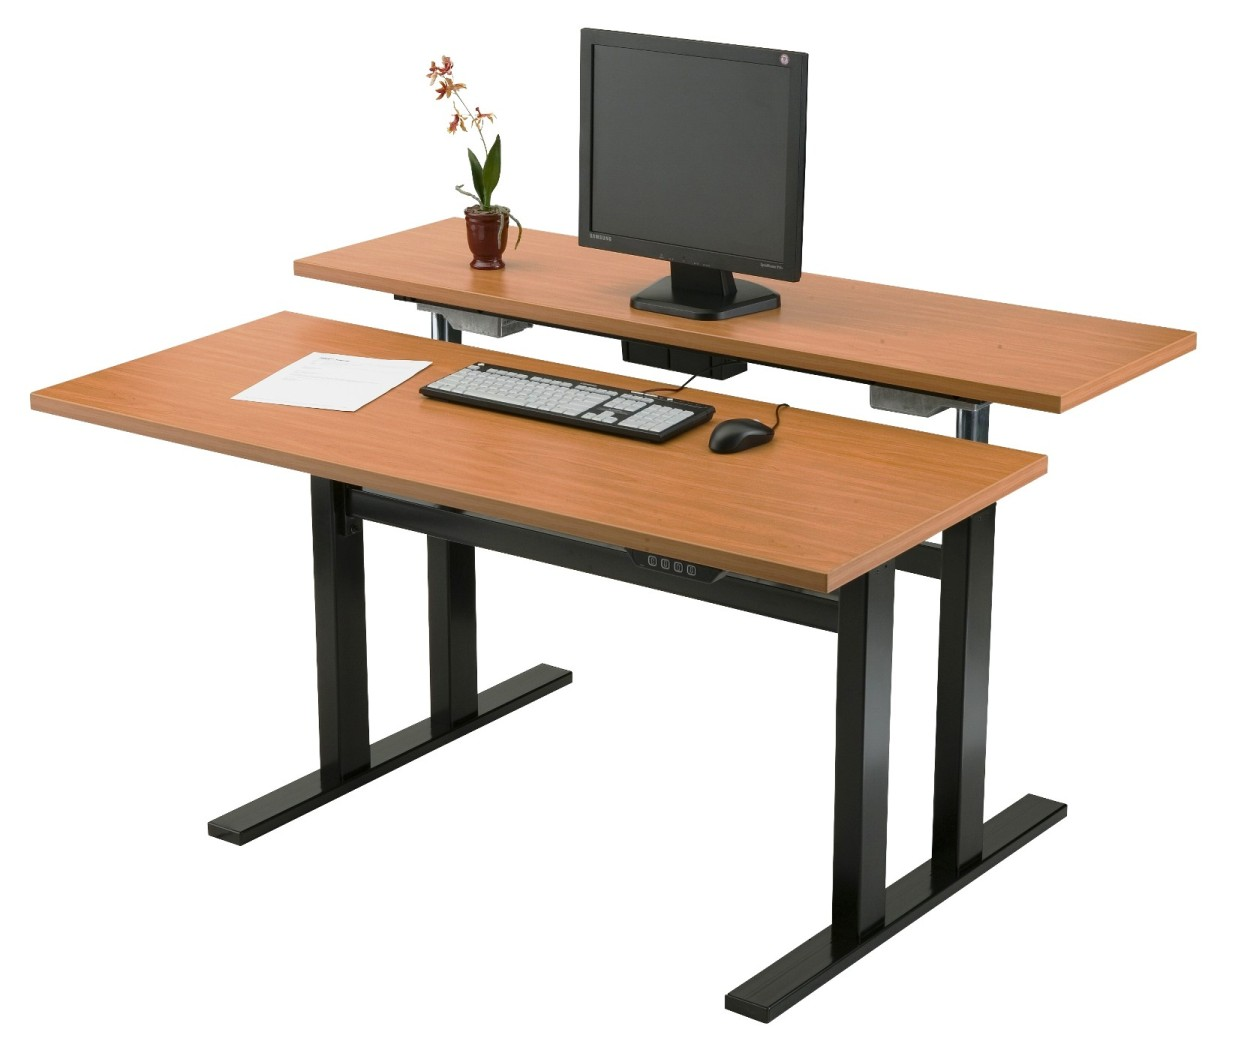 </b></font>STANDING DESK. CONTROL ROOM DESK #TWN. TAA COMPLAINT MADE IN USA. FREE SHIPPING:</font> <p>RATING:&#11088;&#11088;&#11088;&#11088;&#11088;</b></font></b>